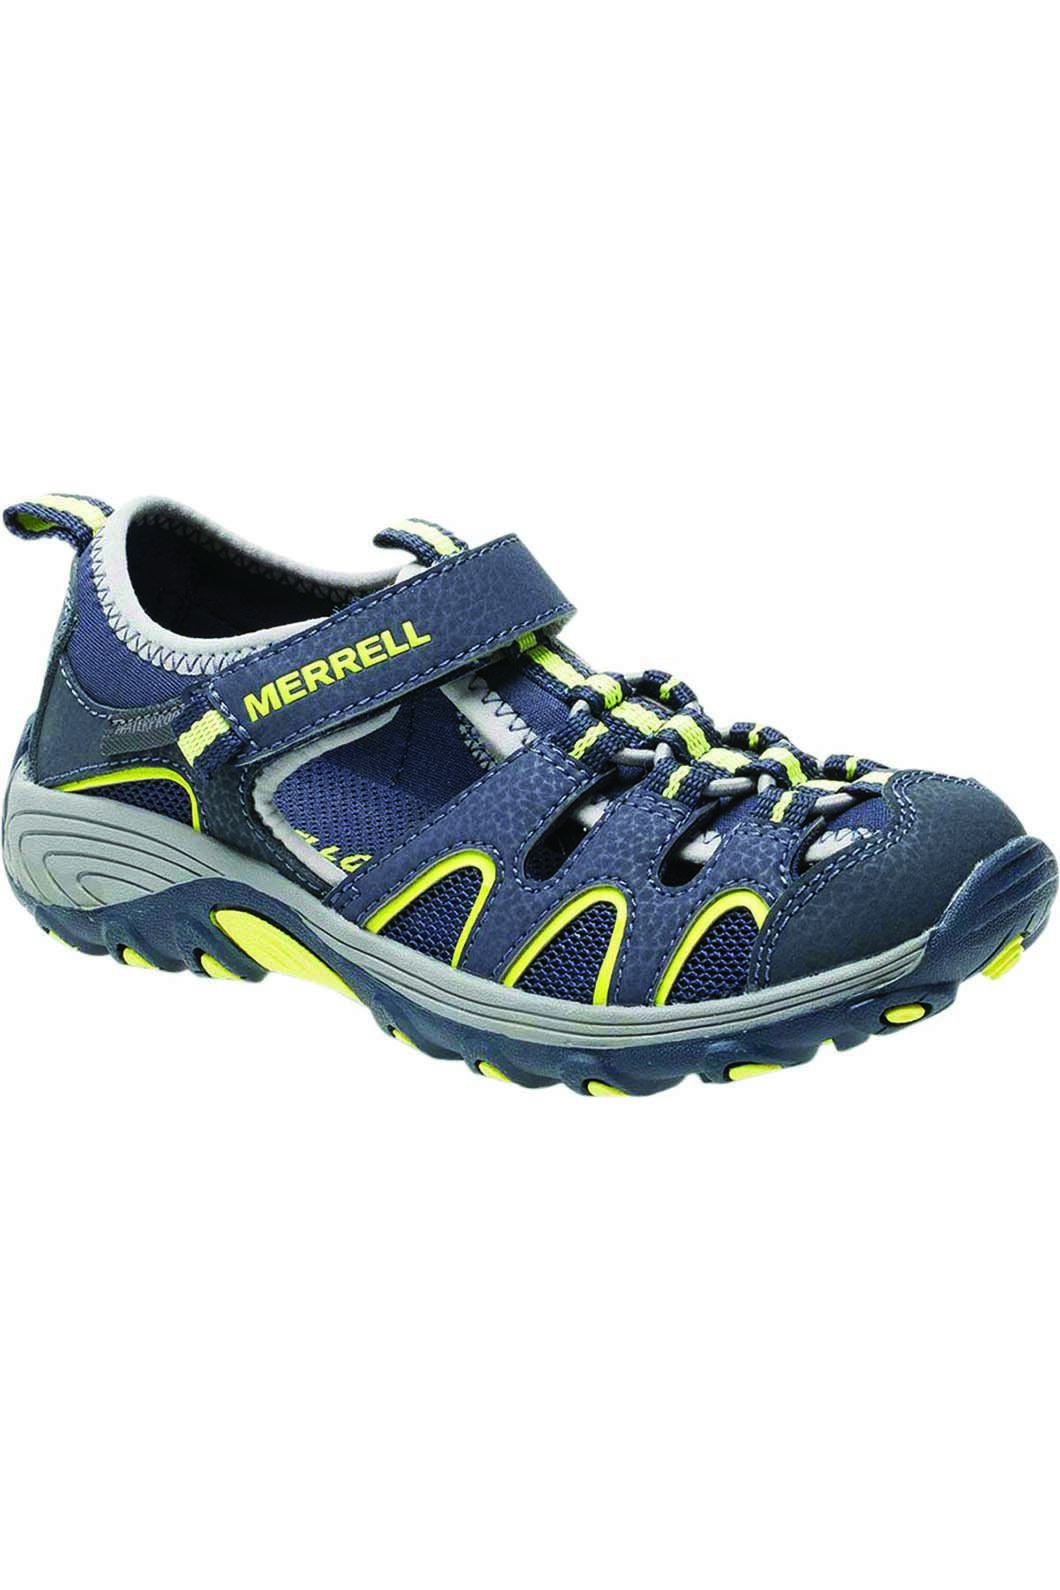 Merrell Kids' Hydro H20 Sandals Lime, NAVY/LIME, hi-res